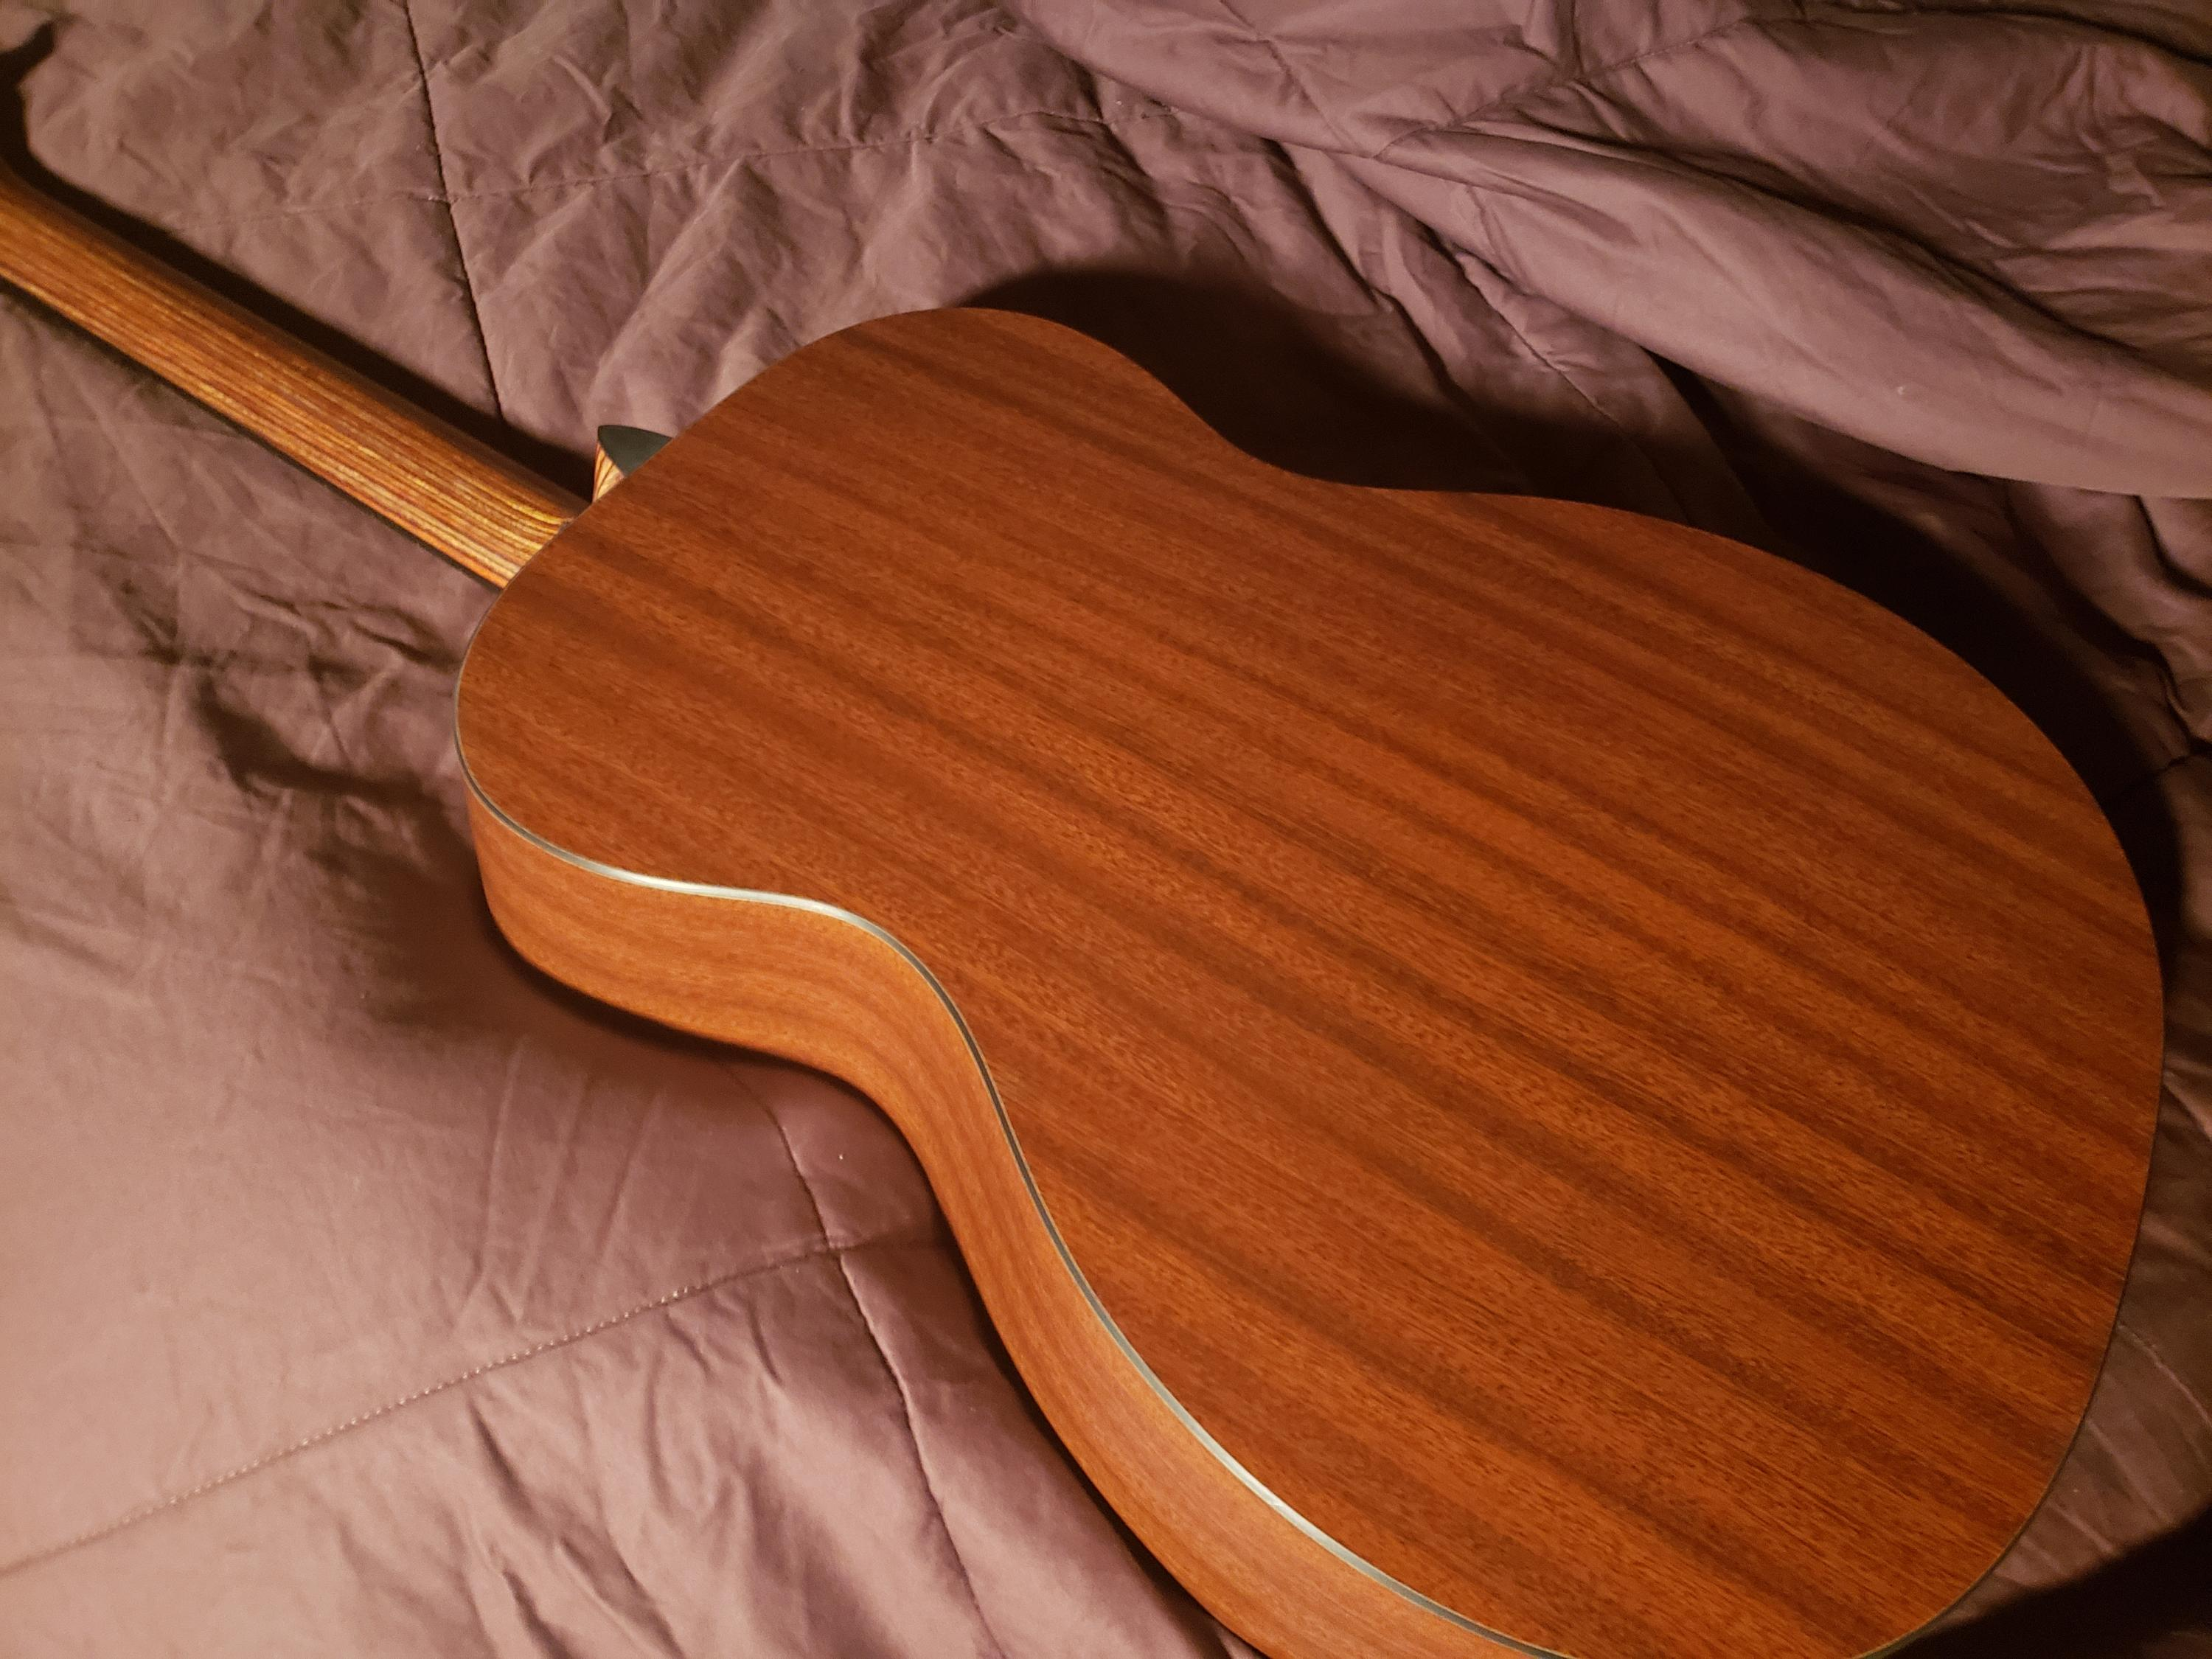 Retail therapy...bought a Martin 000-20210125_070723-jpg